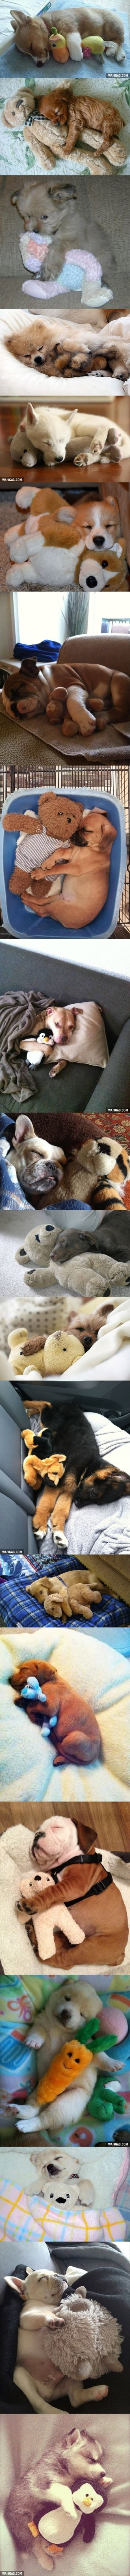 If you're having a bad day. Just look at 20 Puppies Cuddling With Their Stuffed Animals During Nap Time